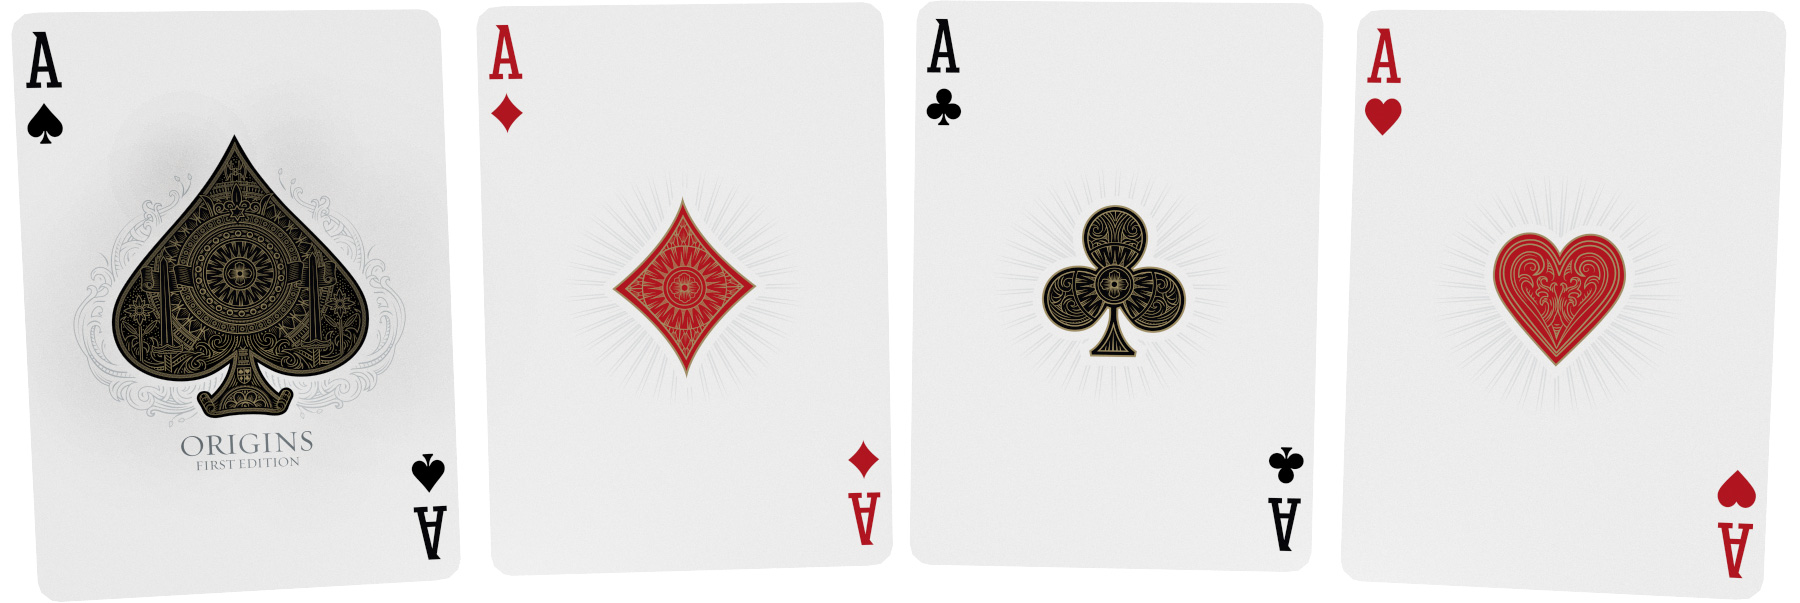 all aces deck of cards